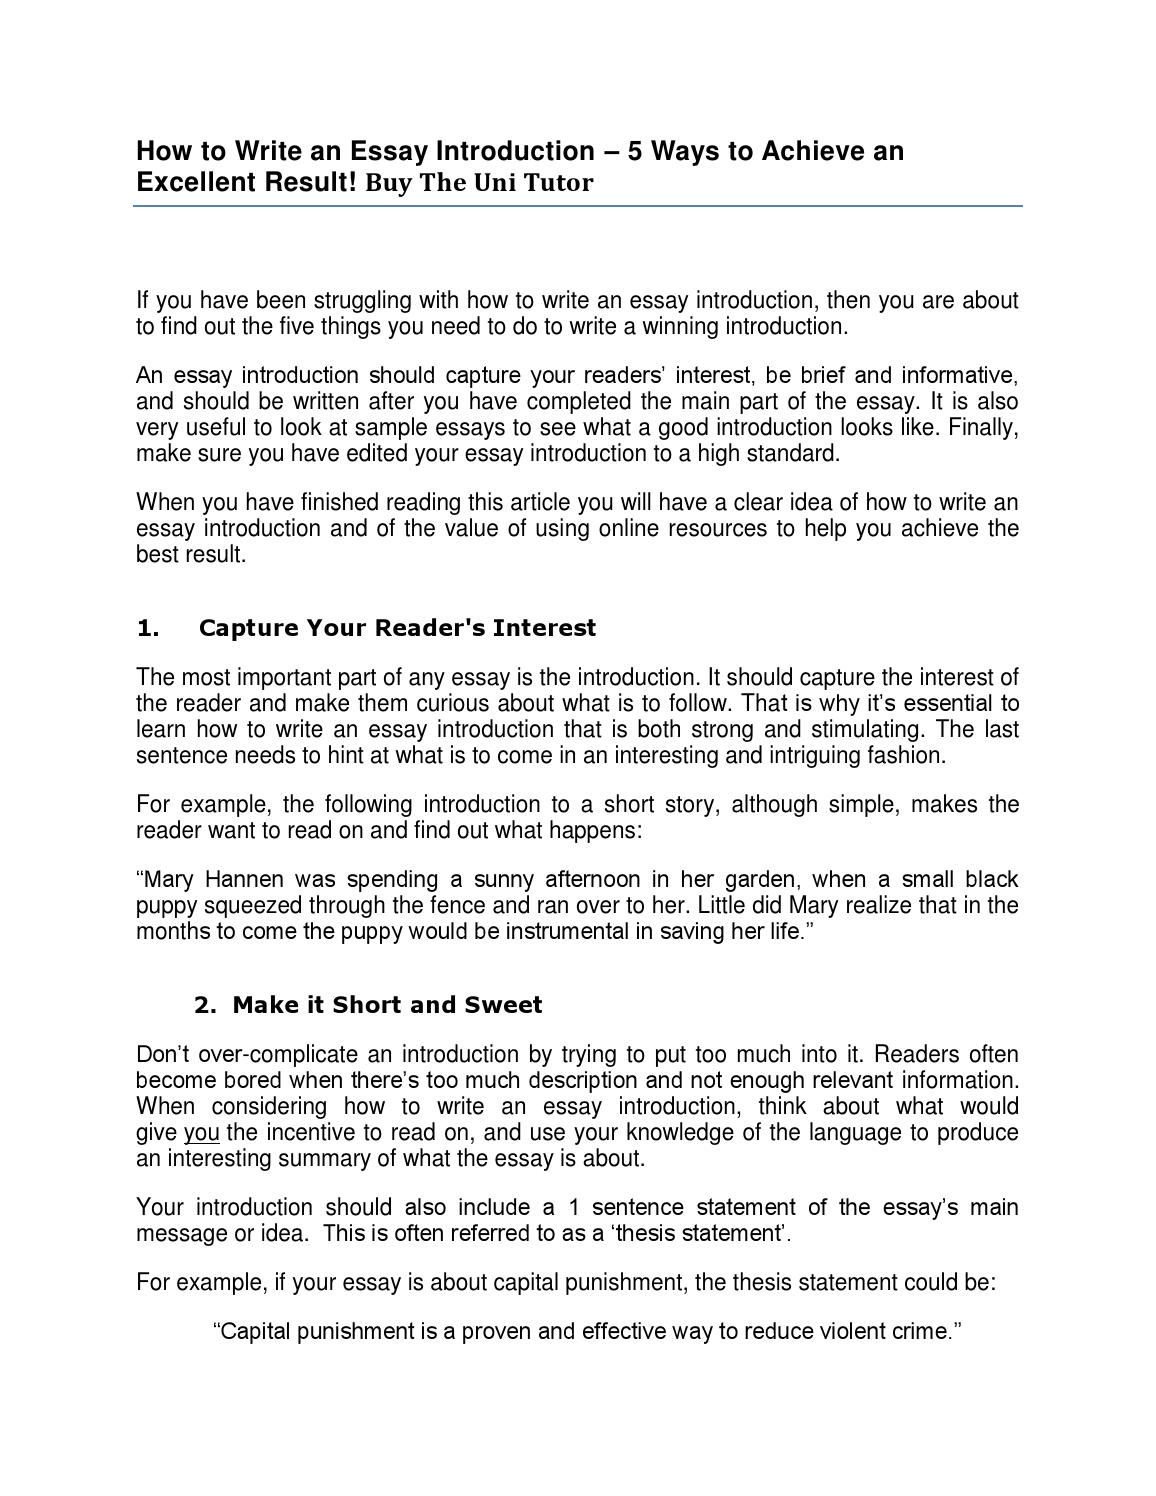 how to write an essay introduction by the uni tutor by vishal  how to write an essay introduction by the uni tutor by vishal kumar issuu